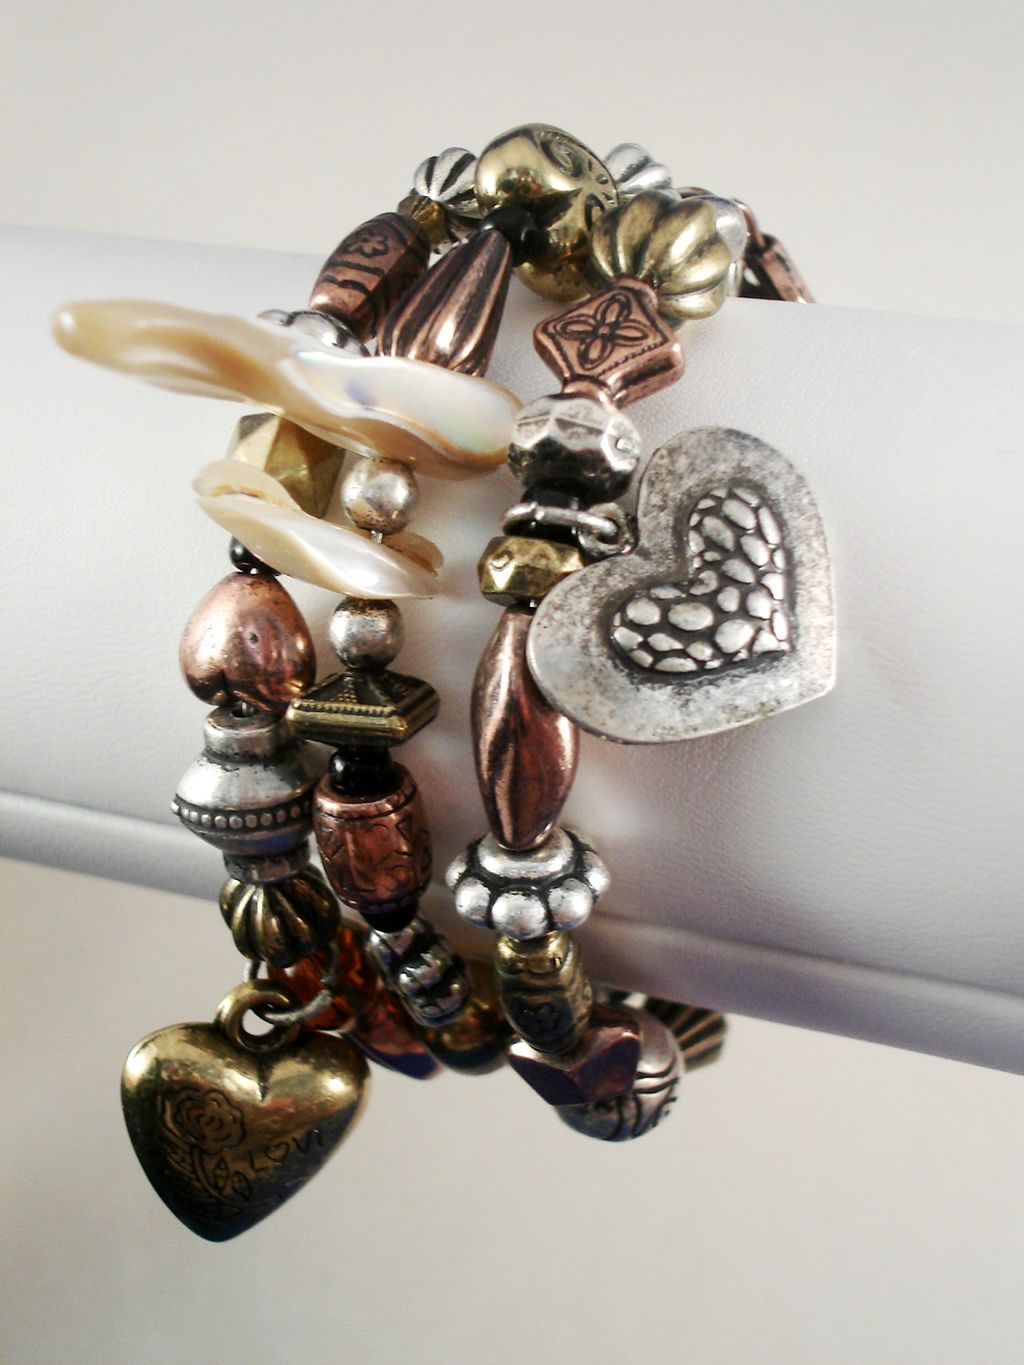 Bulky Three Layers Bypass Bangle Bracelet, Coil Stretching, Heart Charms, Cooper, Bronze & Silver Tone Beads, Shells,  Anti-allergic Jewelry